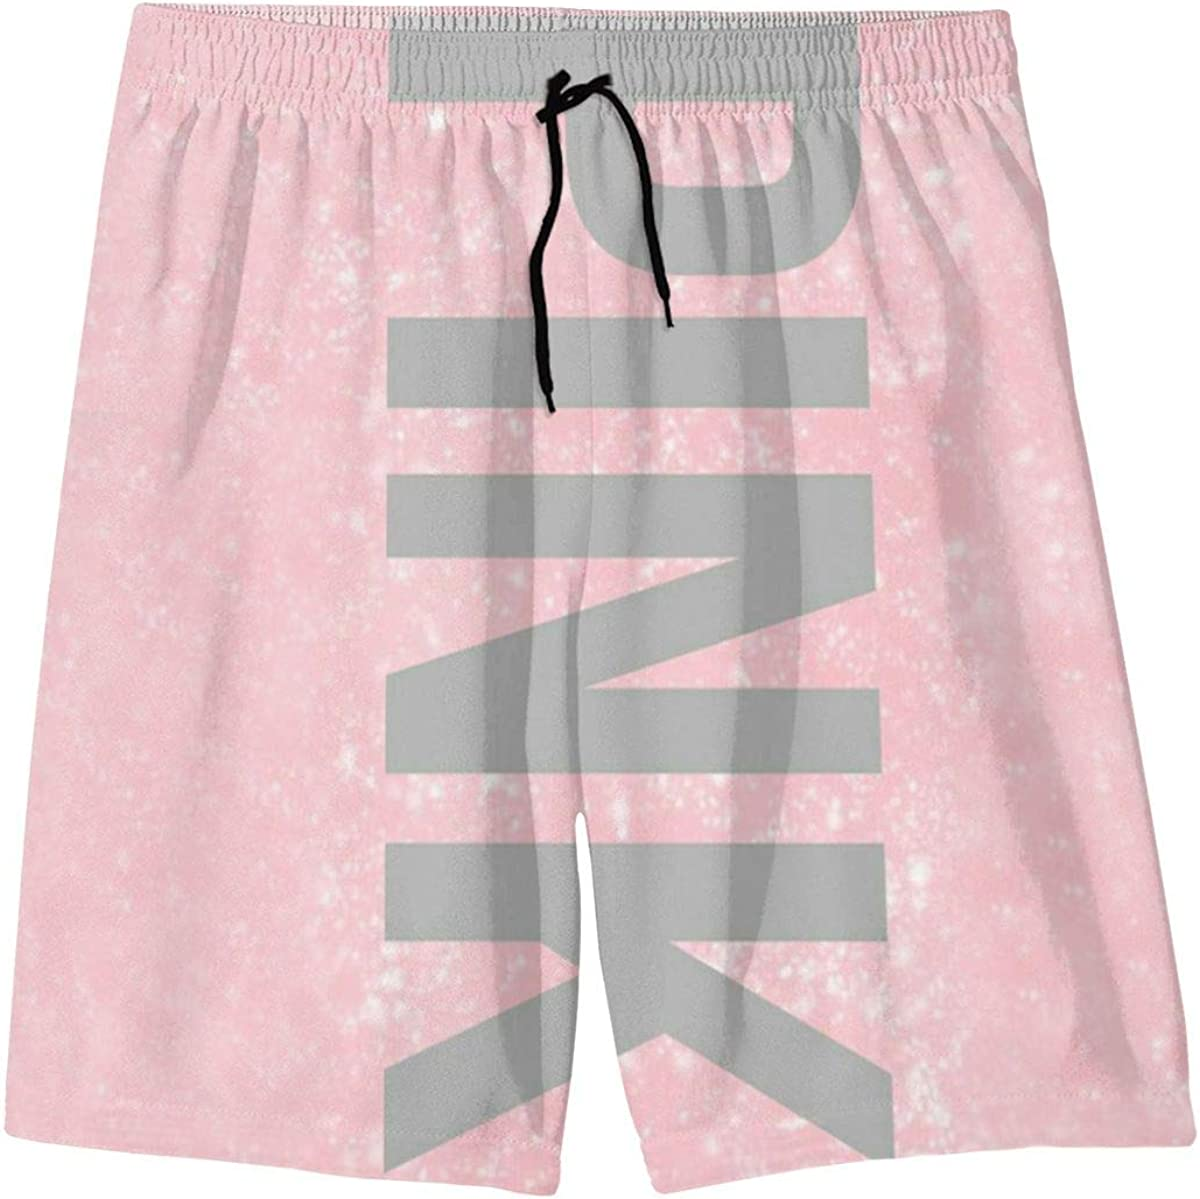 YOIGNG 2018 Nigerian Flag and Map Teens Swim Trunks Beach Shorts Surfing Board Quick Dry Bathing Suit